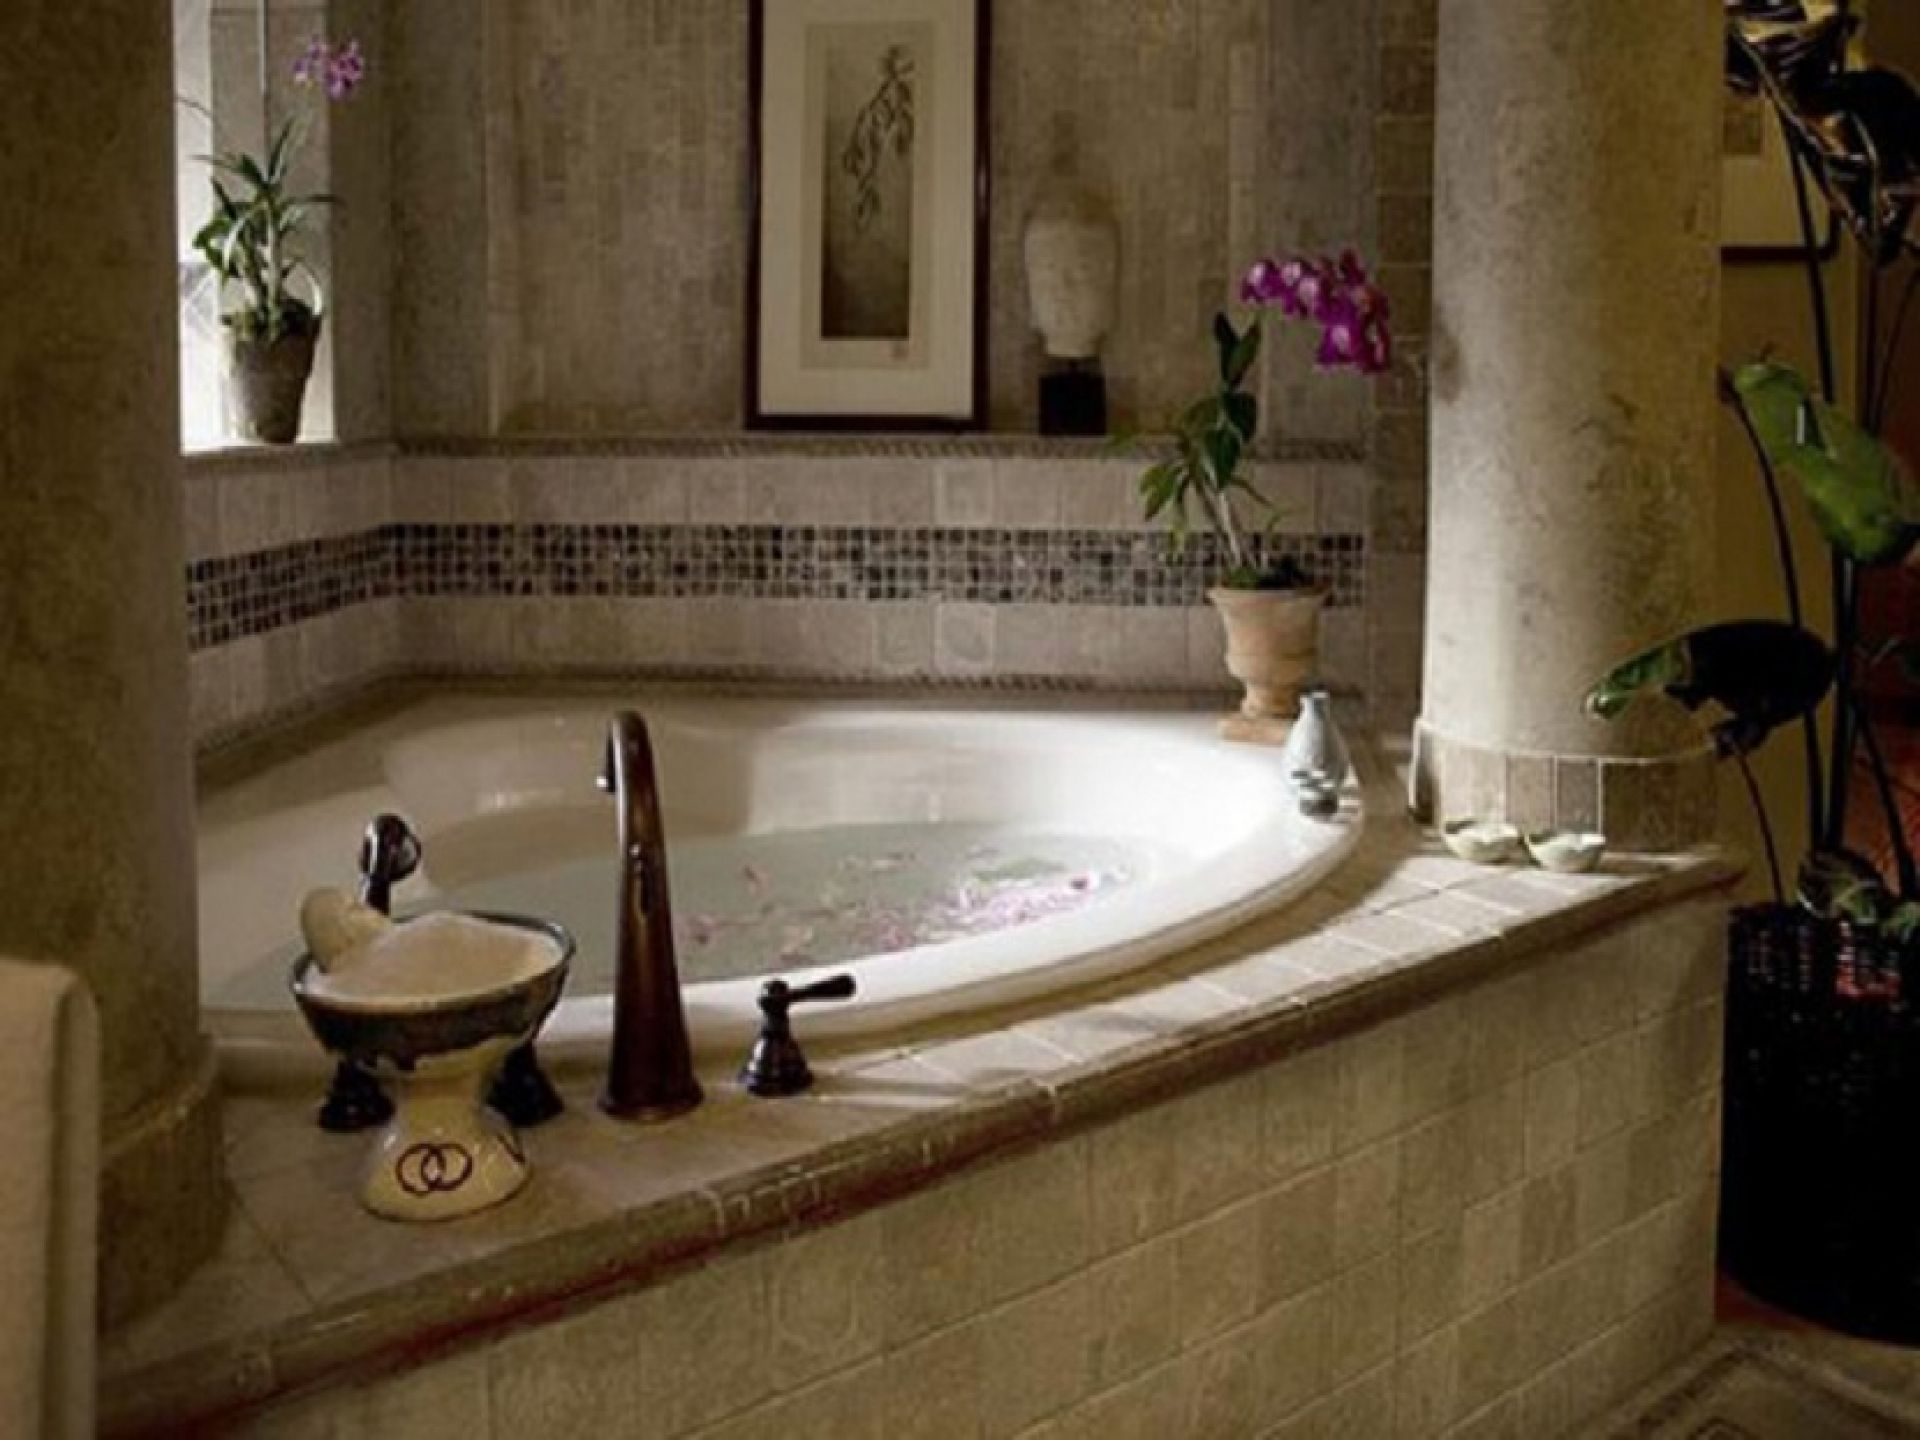 Bathroom Romantic Candice Olson Jacuzzi Corner Bathtub Designs With Bronze Curve Faucet And